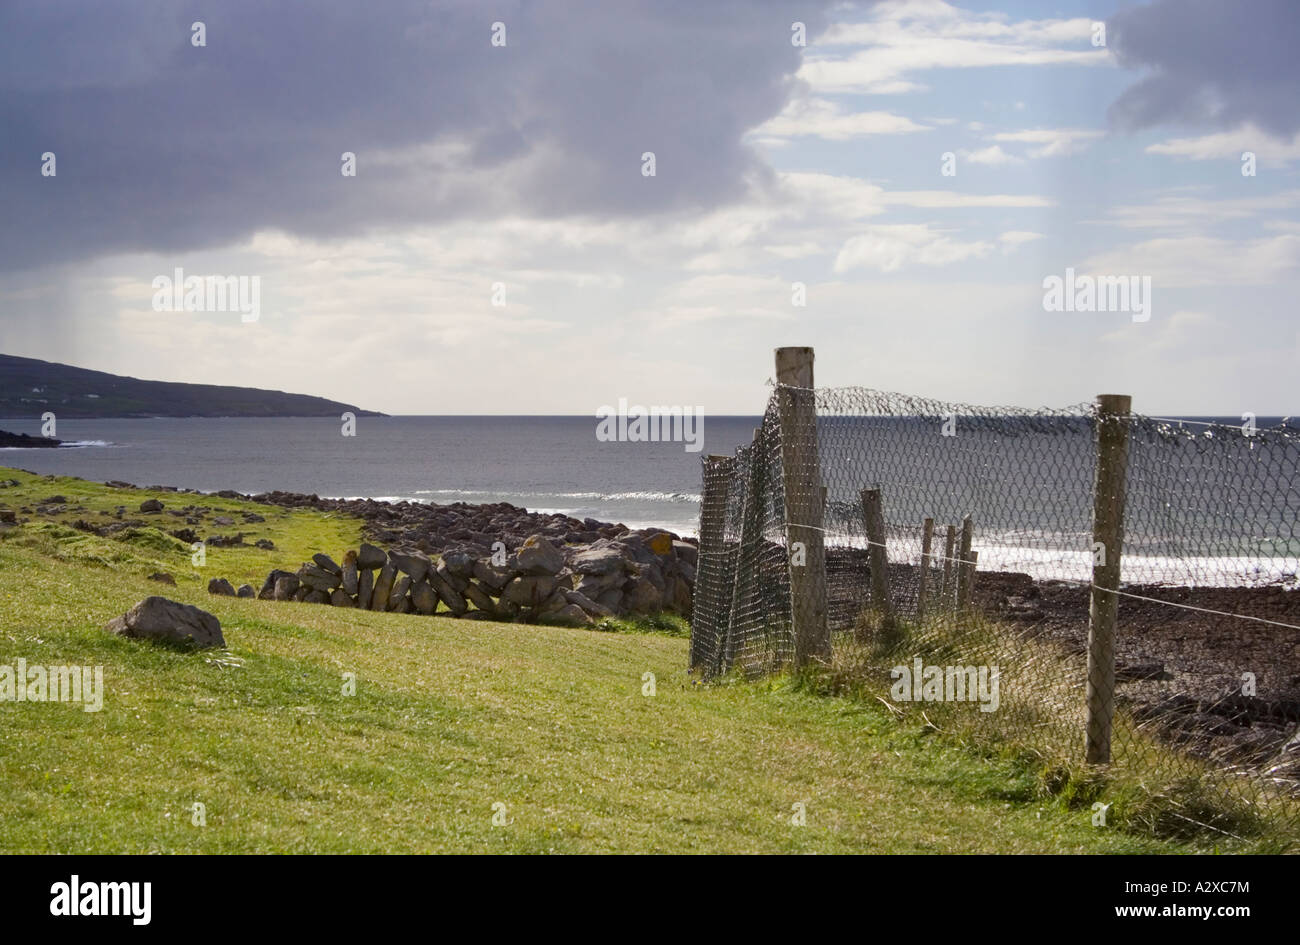 Fanore beach. County Clare. West Coast of Ireland. Rain clouds. Bad weather. - Stock Image